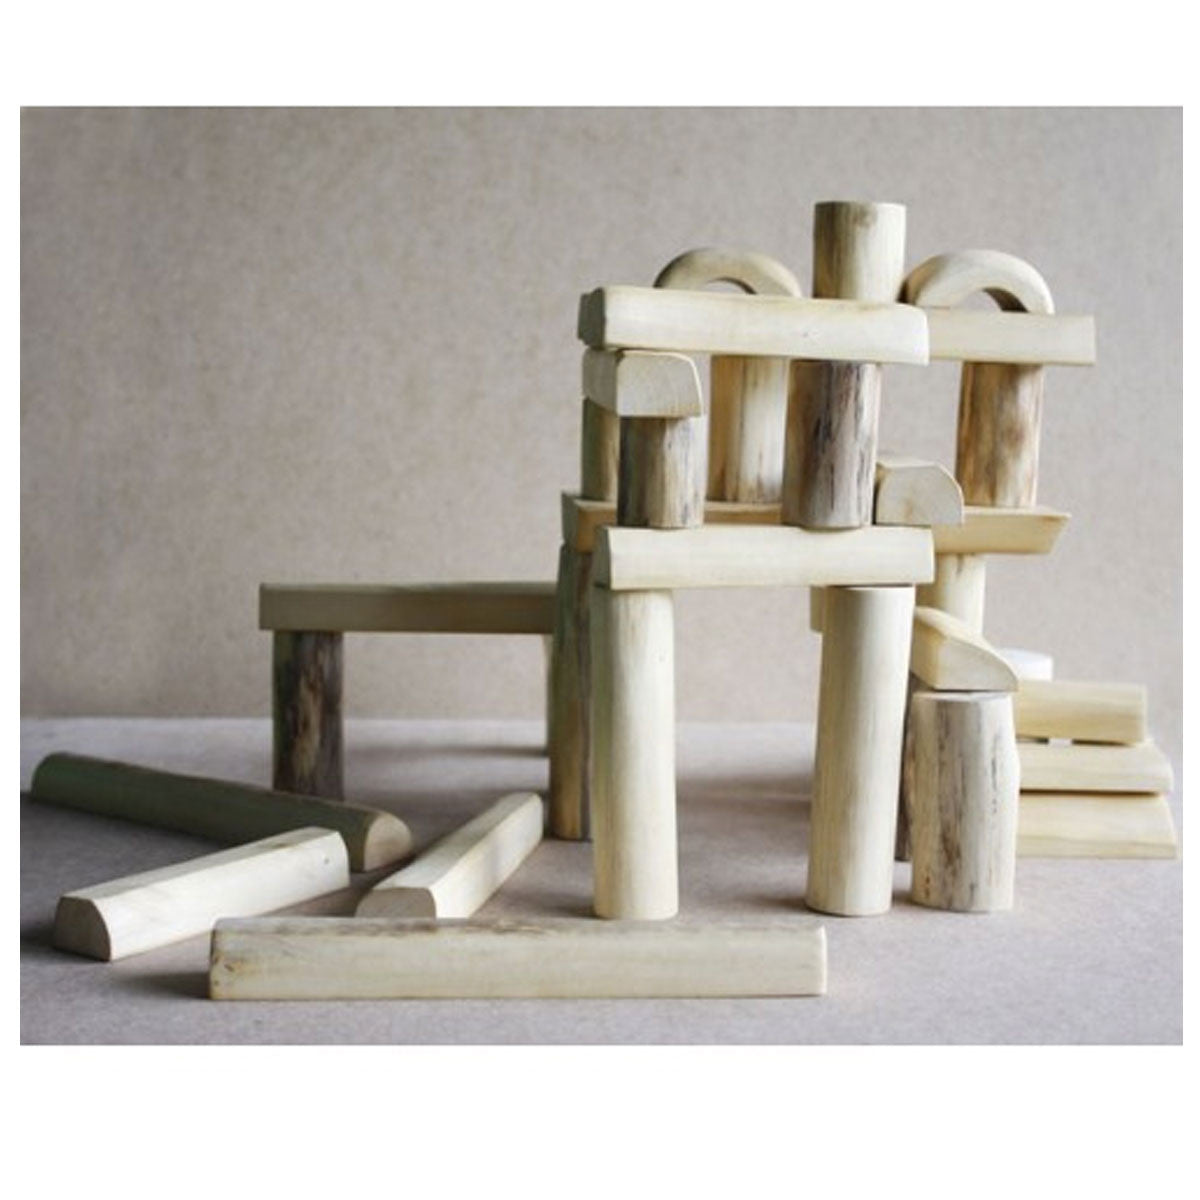 QToys Natural Barkless Tree Blocks   - QToys - Little Earth Nest